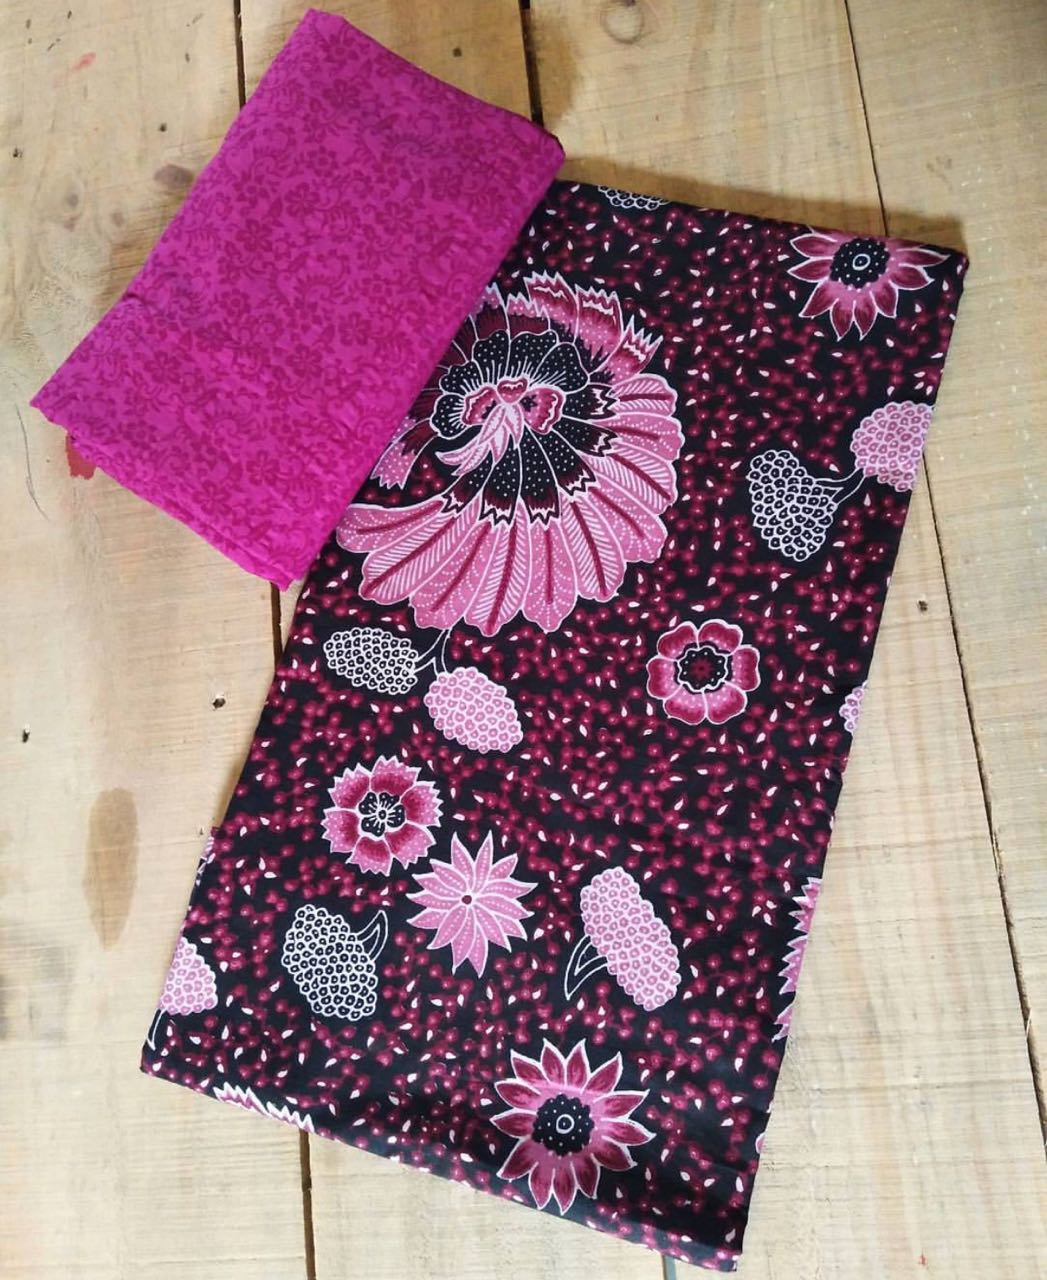 Buy Kain Batik Printing Deals For Only Rp79000 Instead Of Set Embos 9 Emboss Fabrics Can Be Changed In Appropriate Color Embossed Cloth Referring To Not On Motif Bross Necklaces Sold